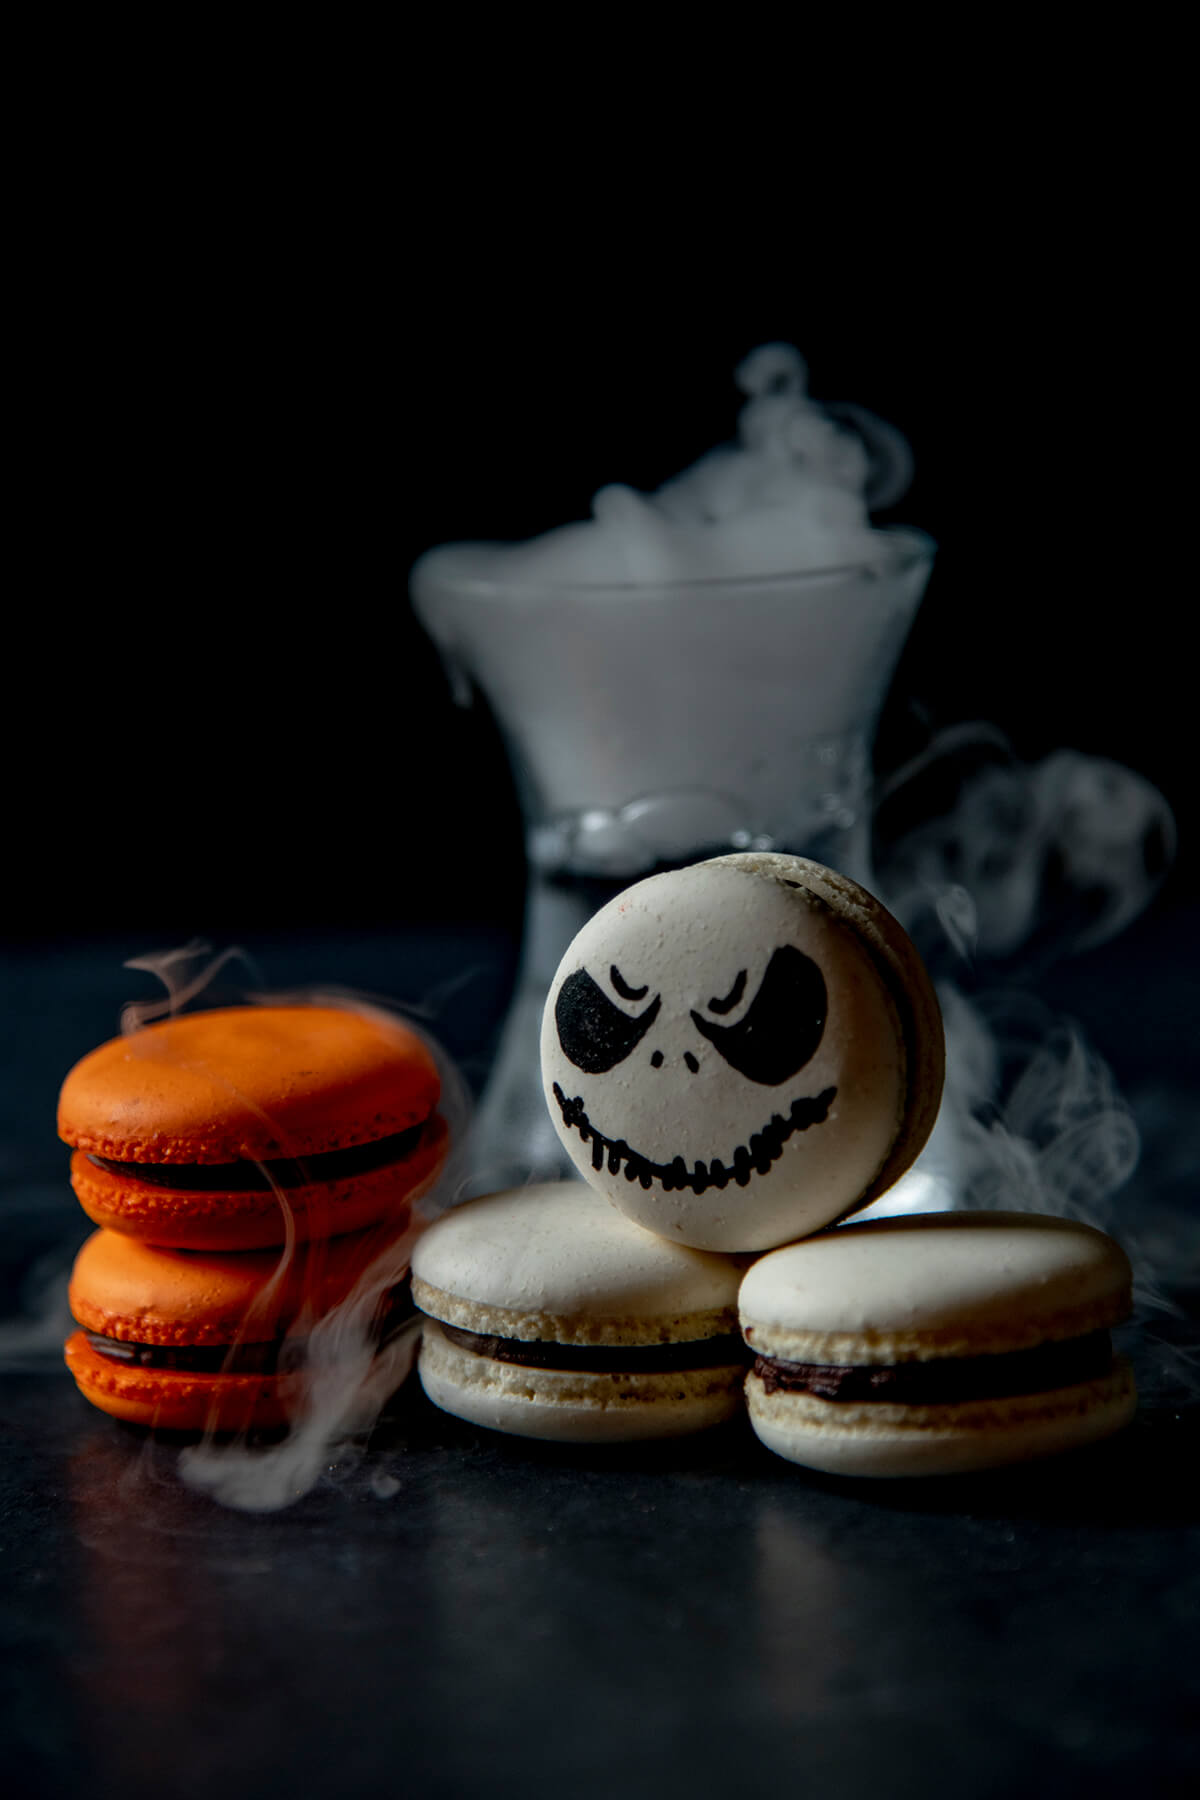 Oh no one mean macaron